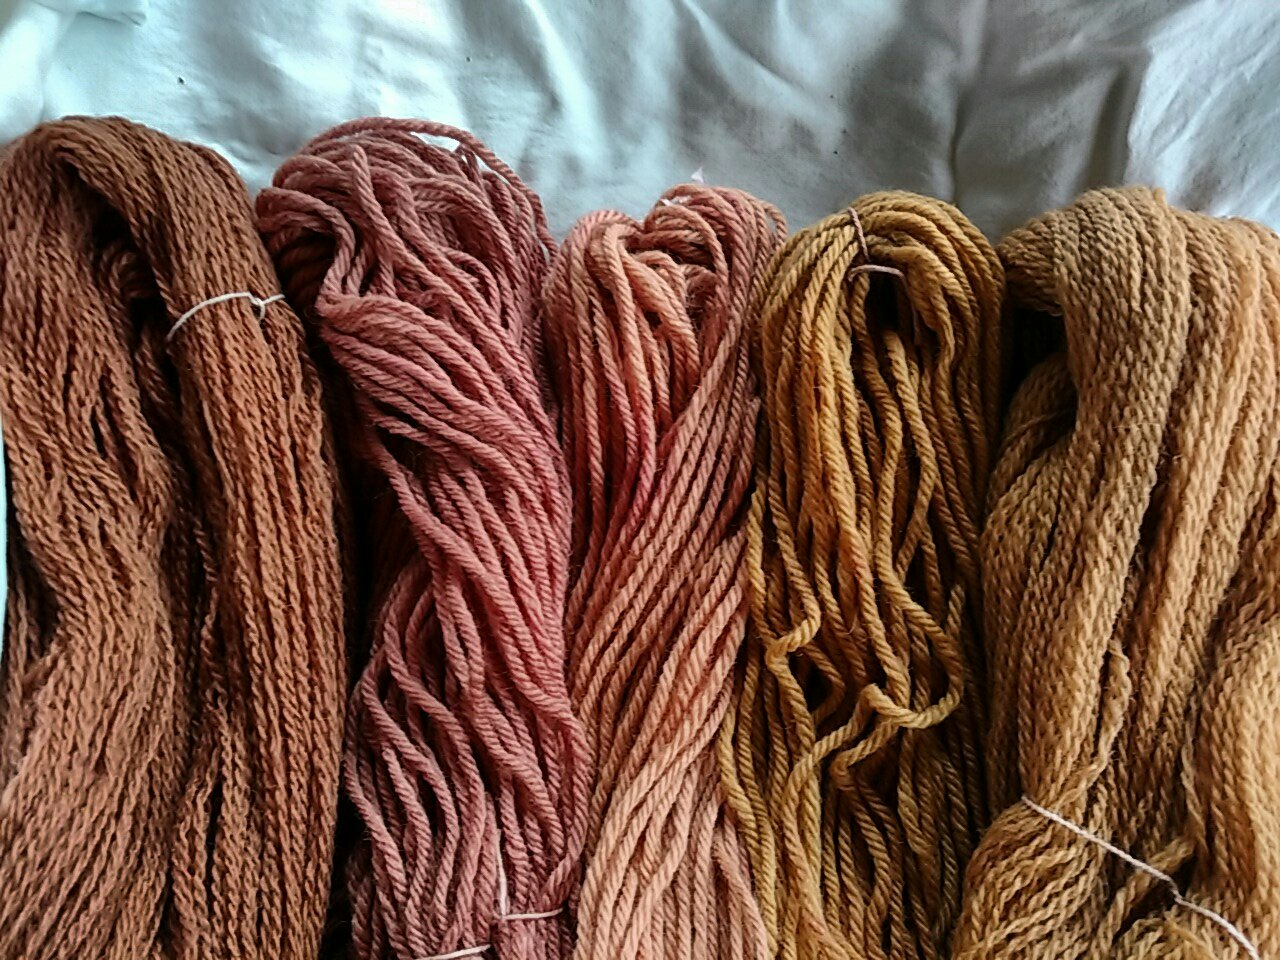 Willow bark natural dye on wool.